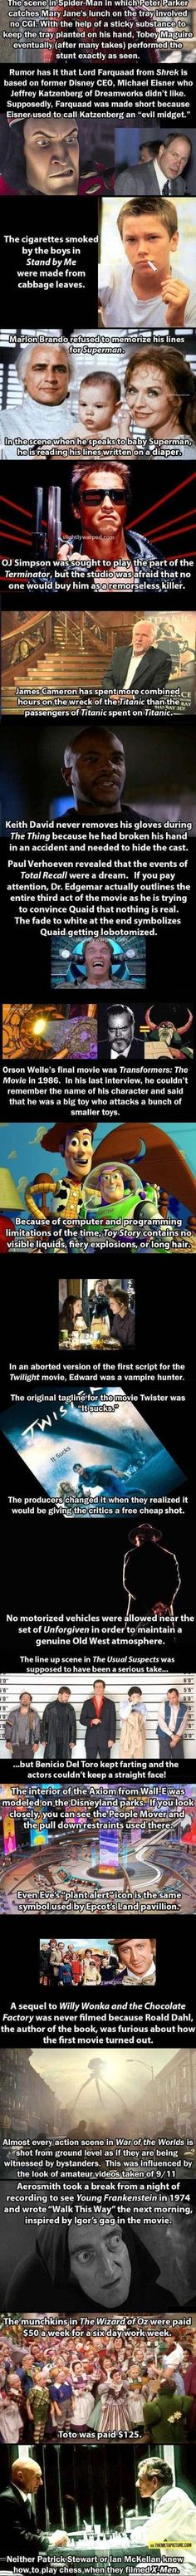 Movie facts you probably didn't know...